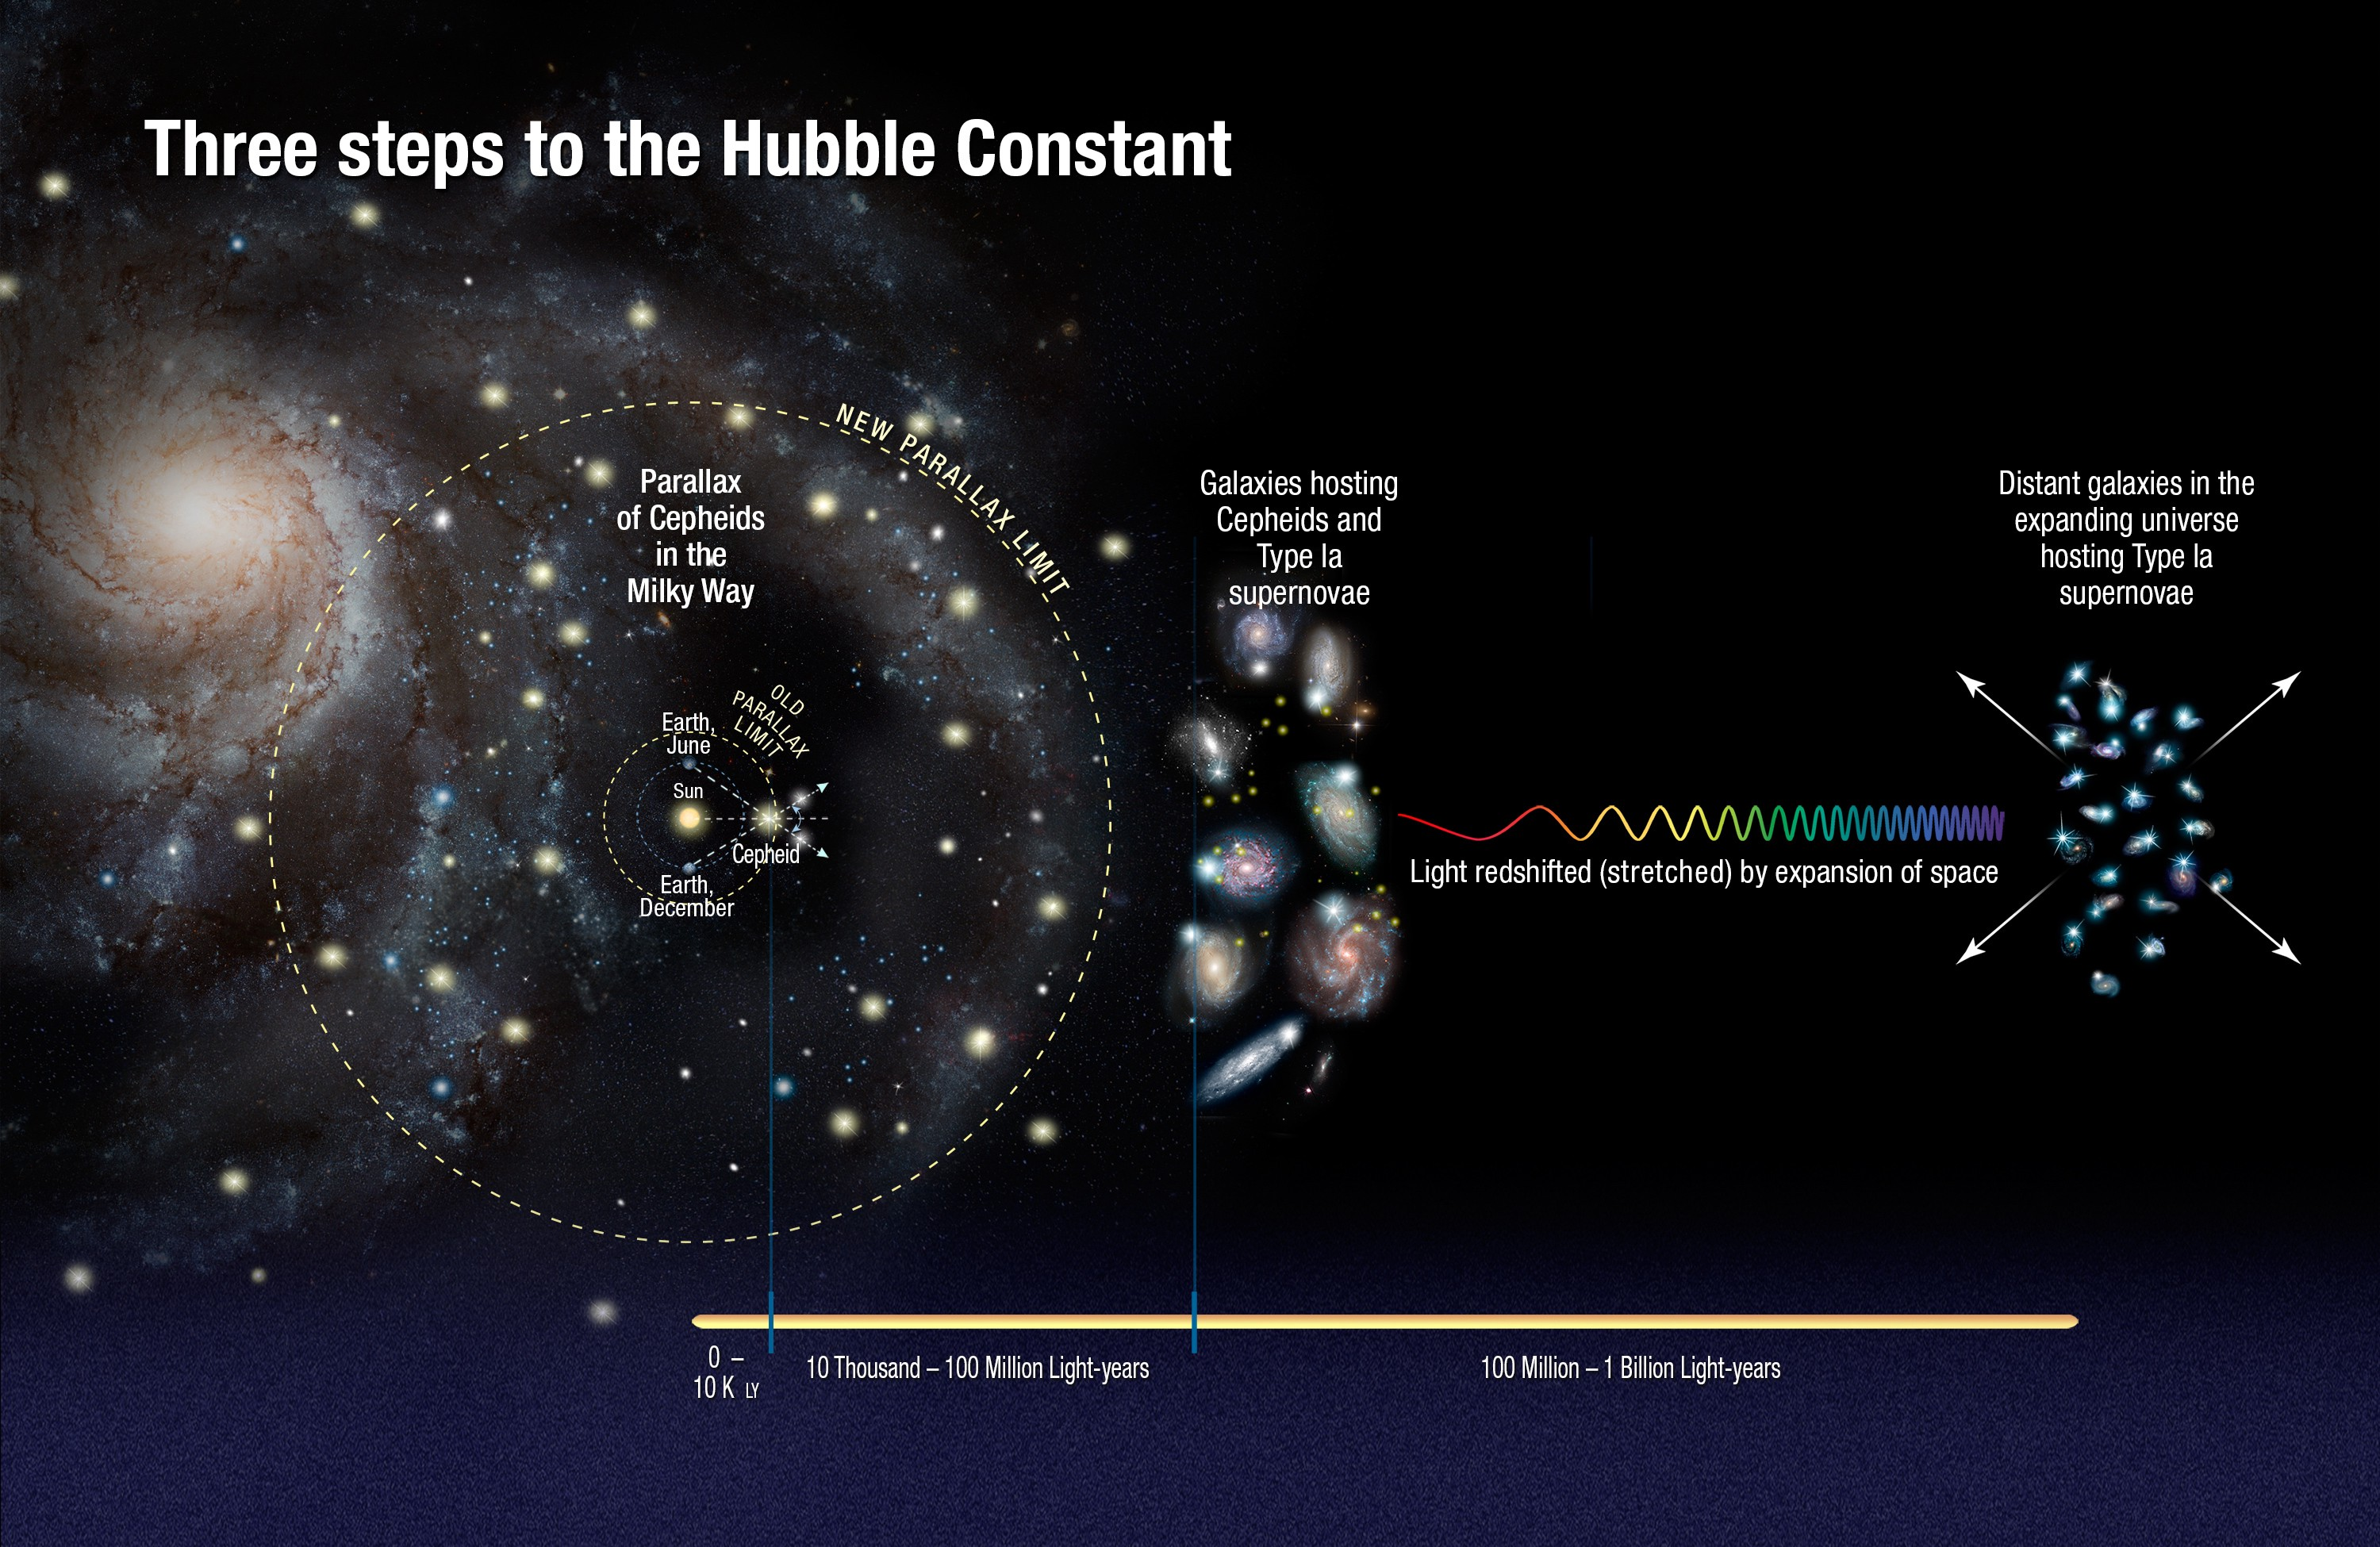 Another Look At The Hubble Constant